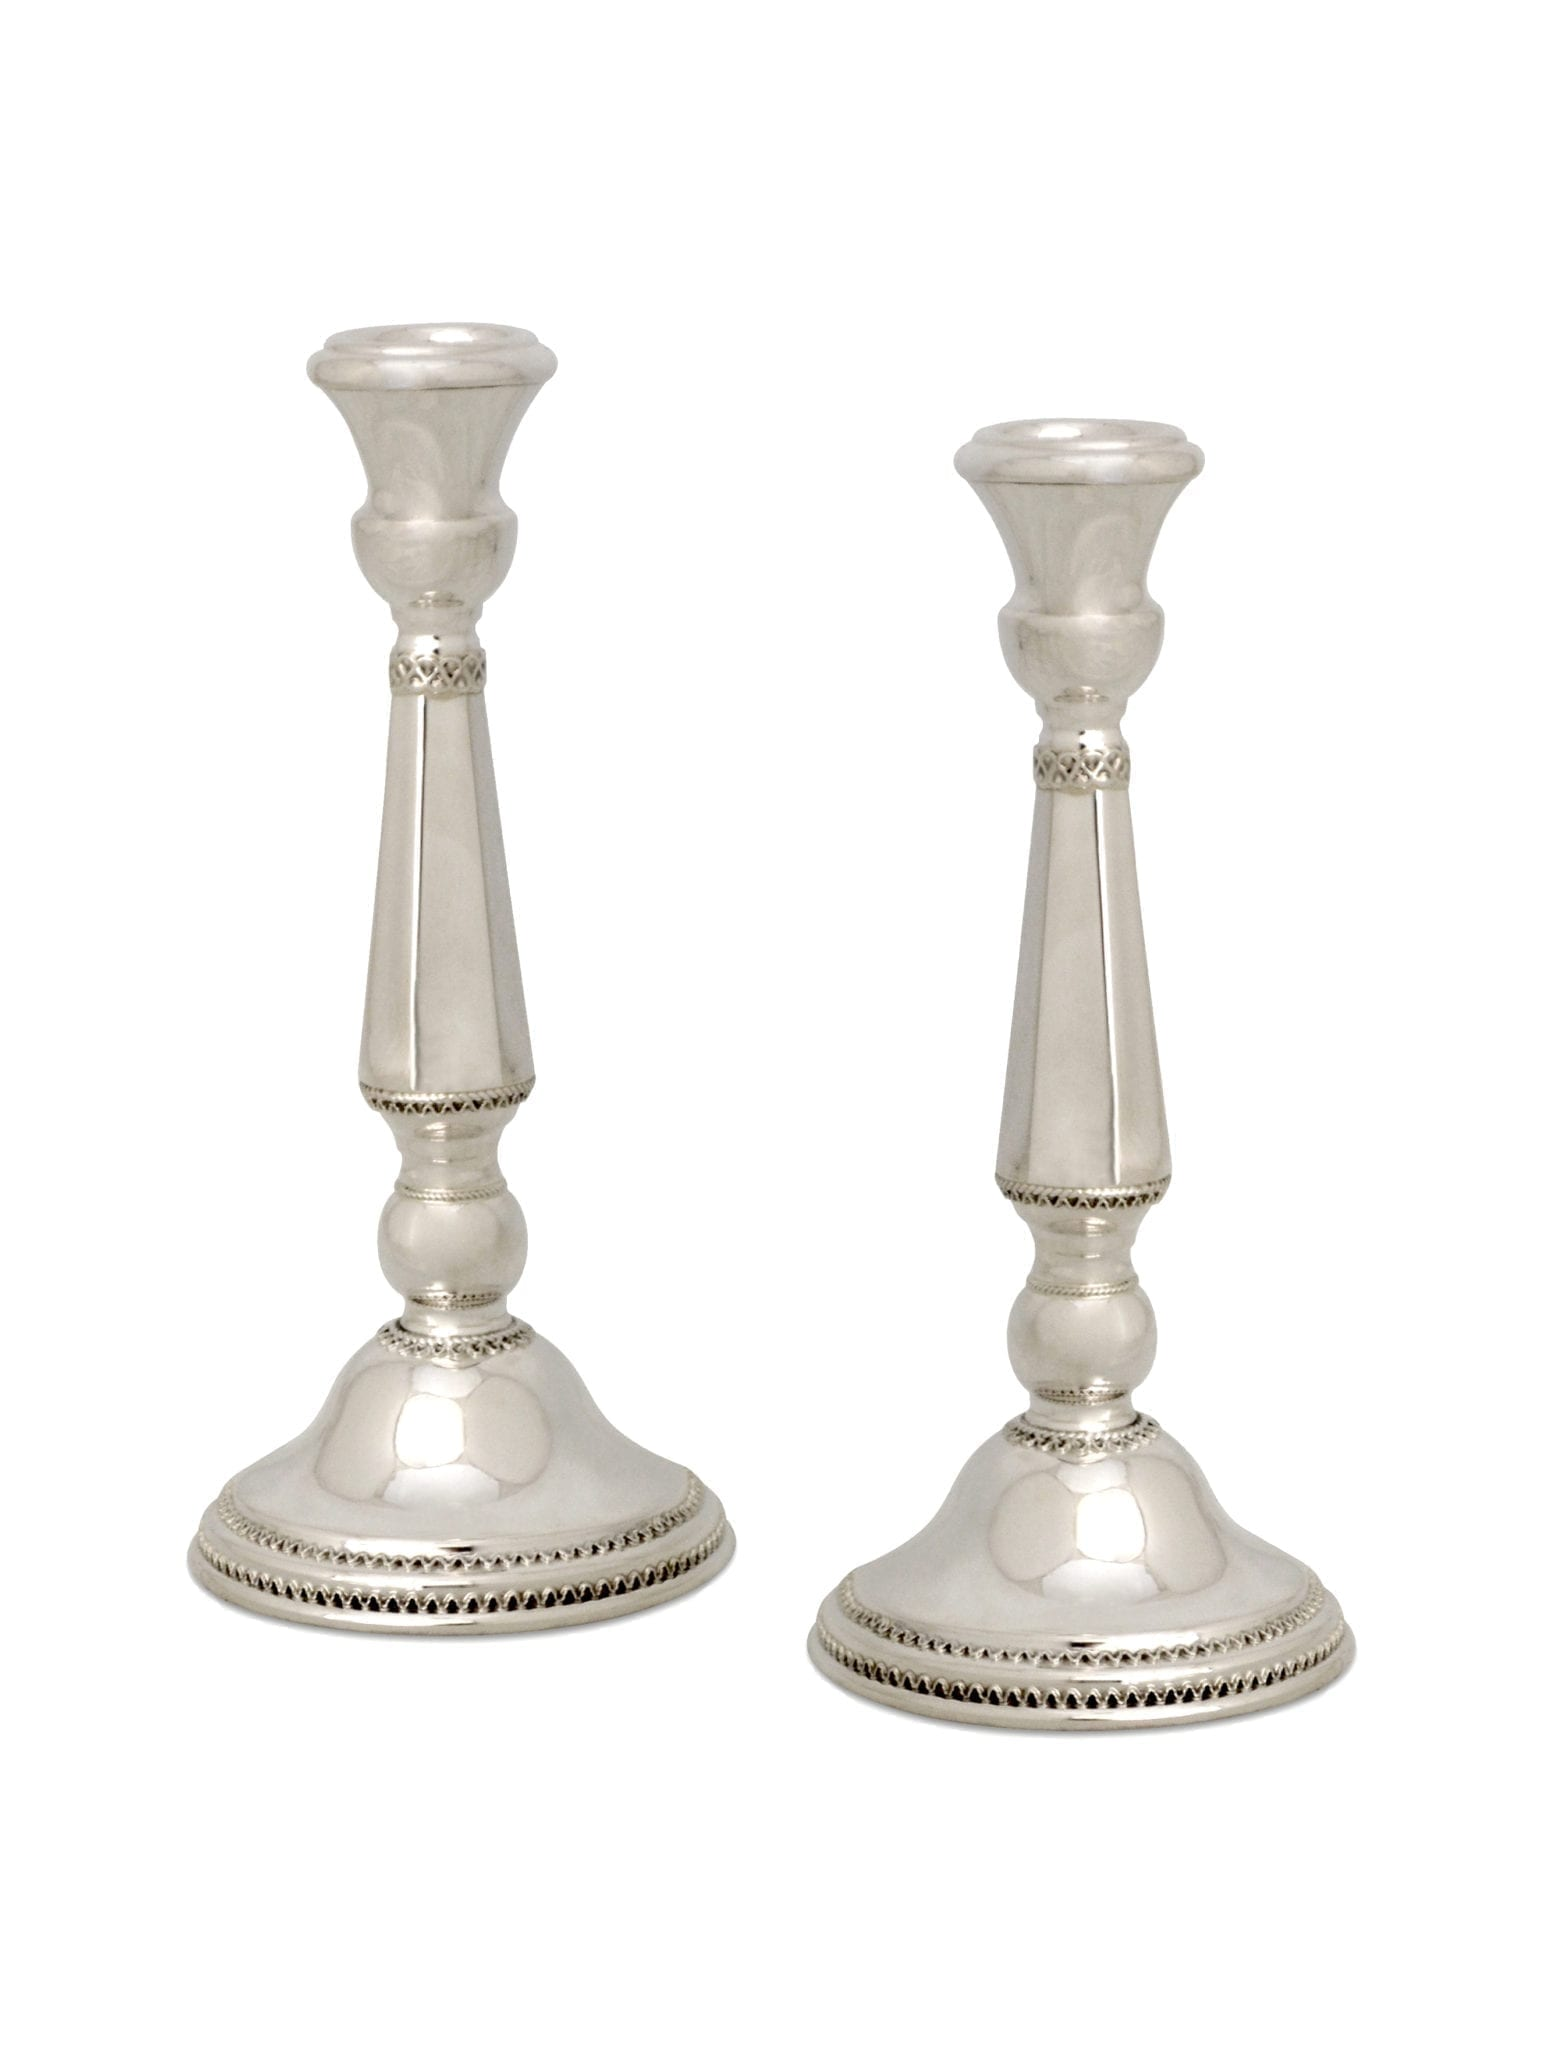 Small, elegant, classic Shabbat sterling silver candlesticks. Shabbat Judaica made in Israel